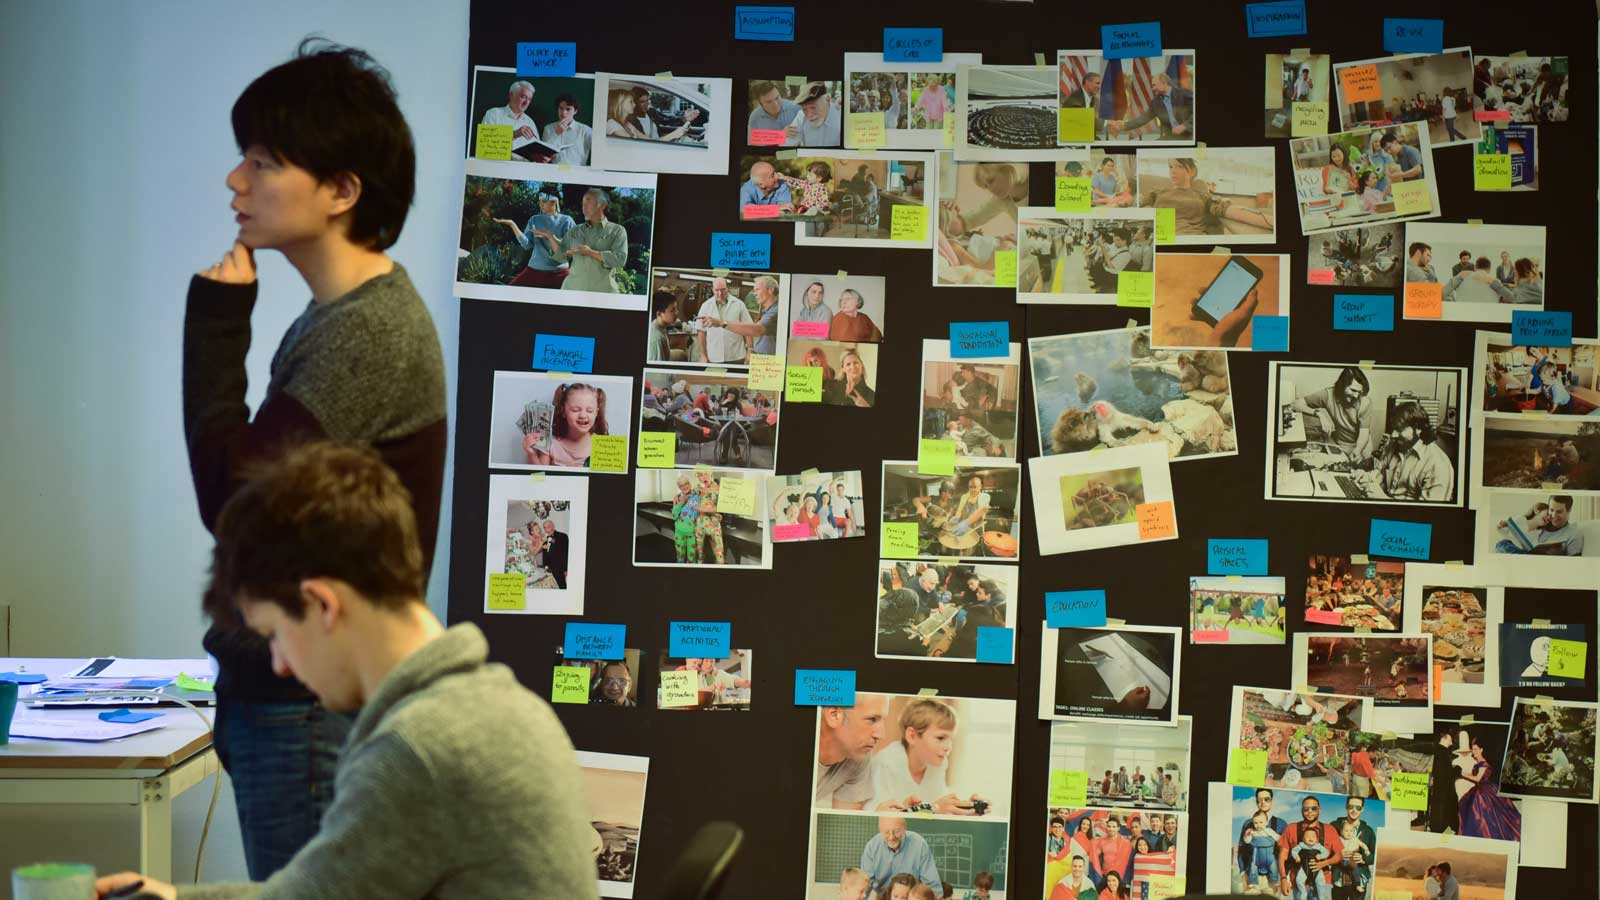 people centered research at CIID